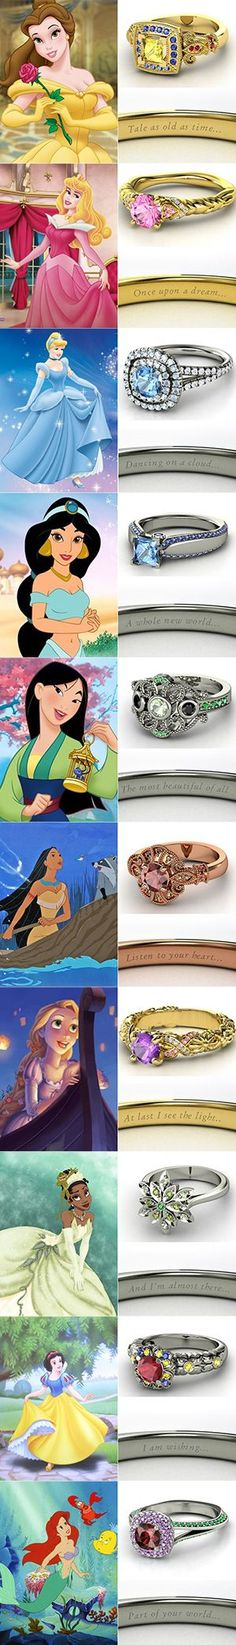 I can't believe how accurate I feel these rings are, you don't even need the cartoons next to them to see where the designs are inspired from :)